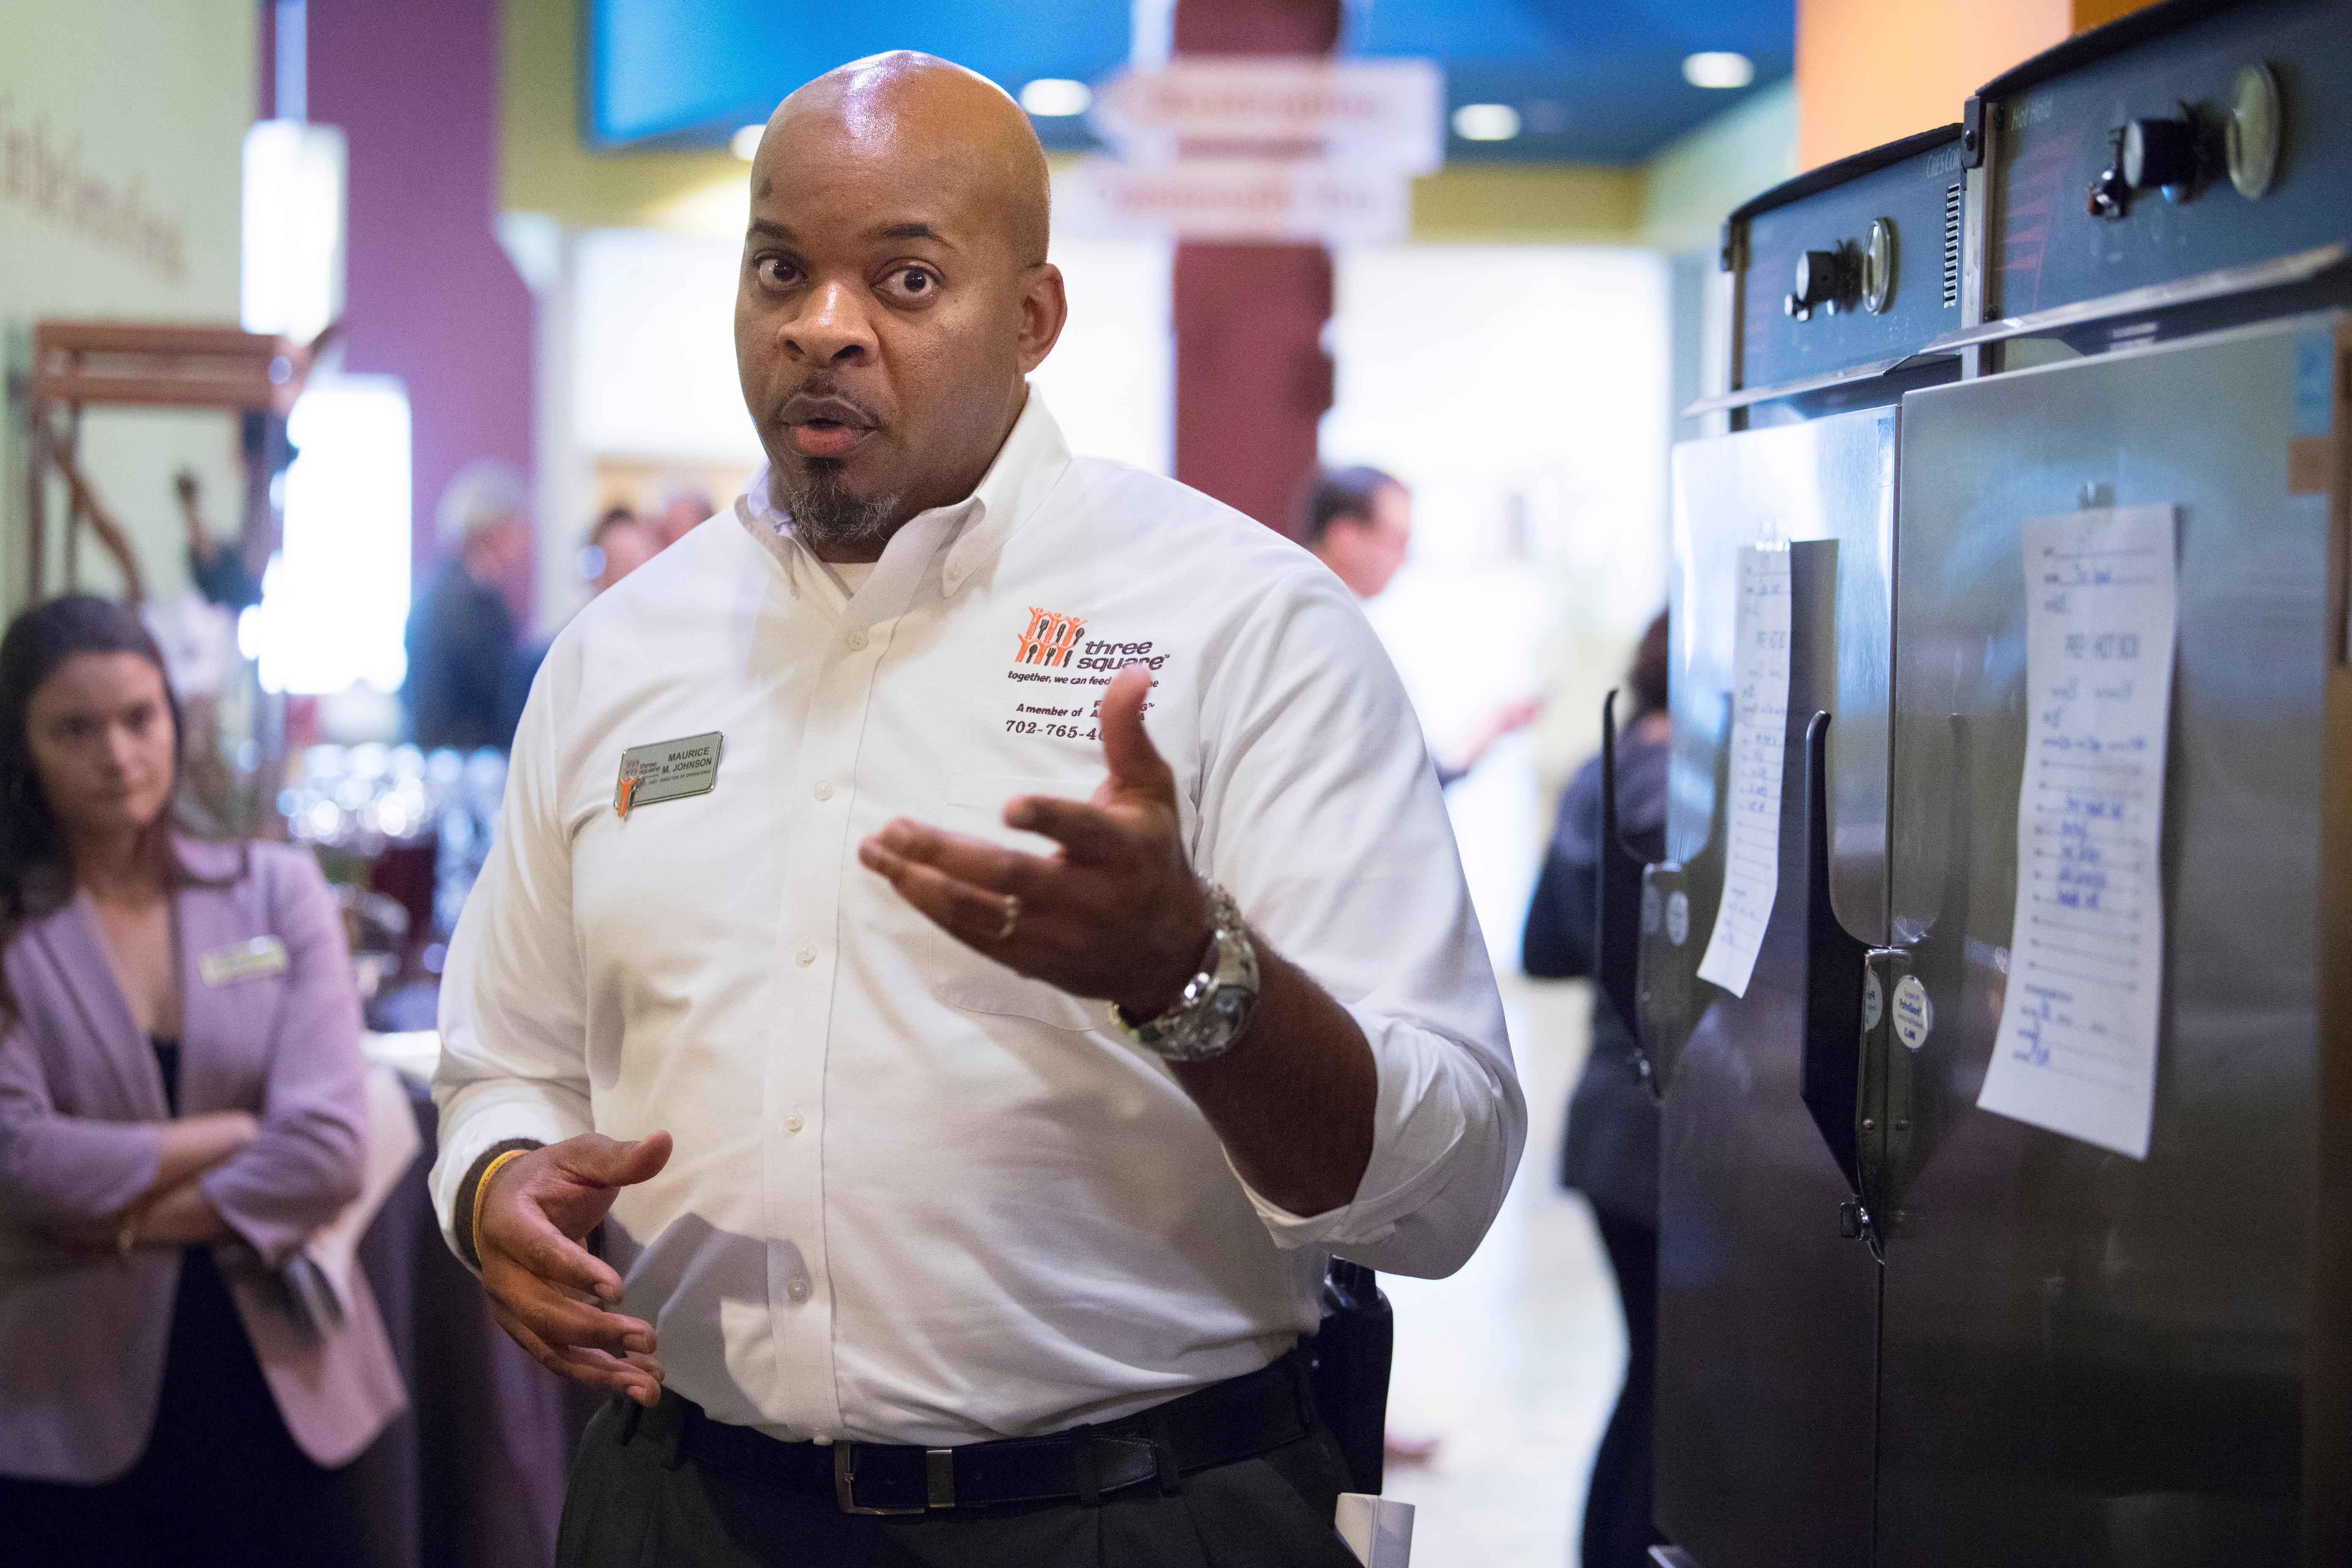 Three Square Director of Operations Maurice Johnson describes how excess banquet food is held in the hot boxes behind him during an event announcing a partnership between MGM Resorts International and Three Square food bank to expand their surplus banquet food rescue program Wednesday, January 17, 2018. CREDIT: Sam Morris/Las Vegas News Bureau